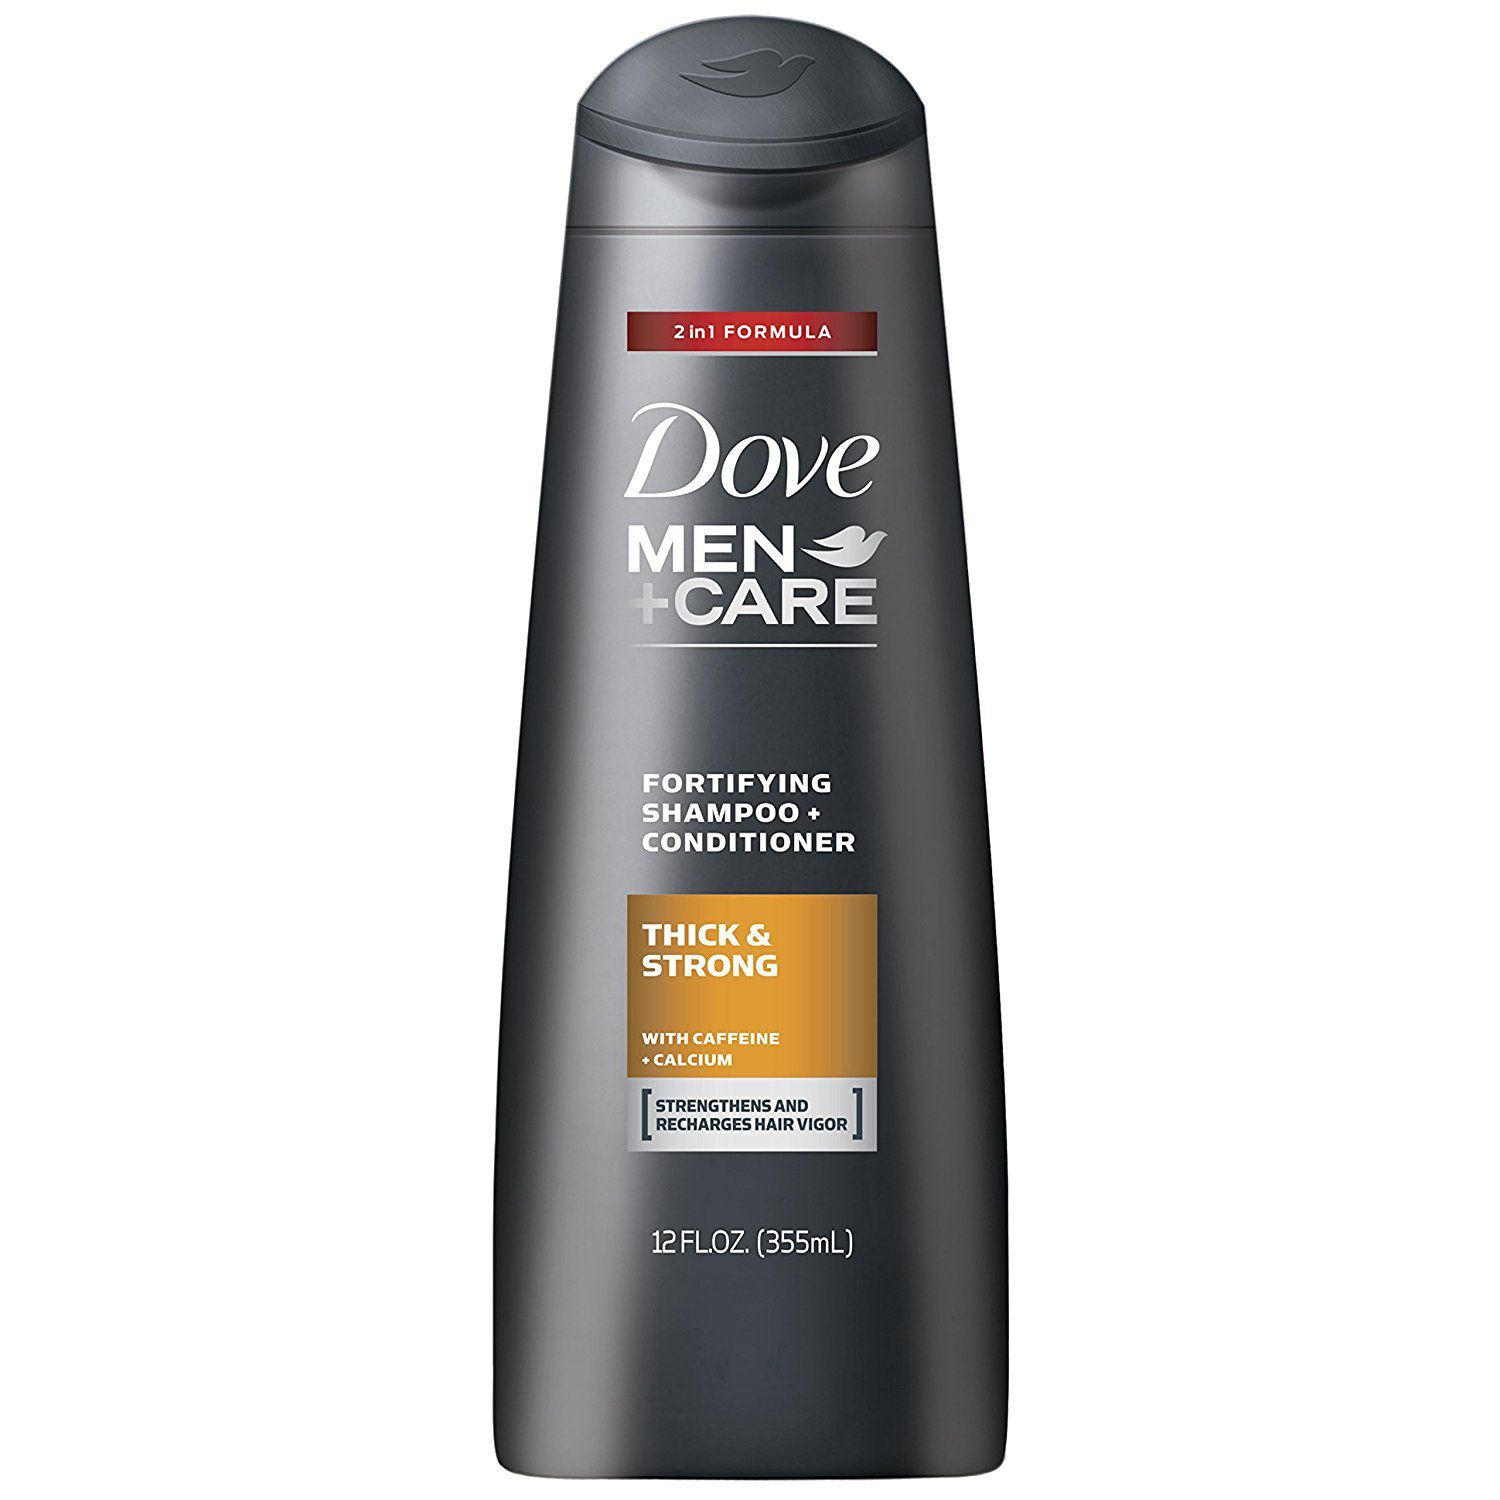 Dove Men+Care 2-In-1 Thick and Strong Shampoo + Conditioner